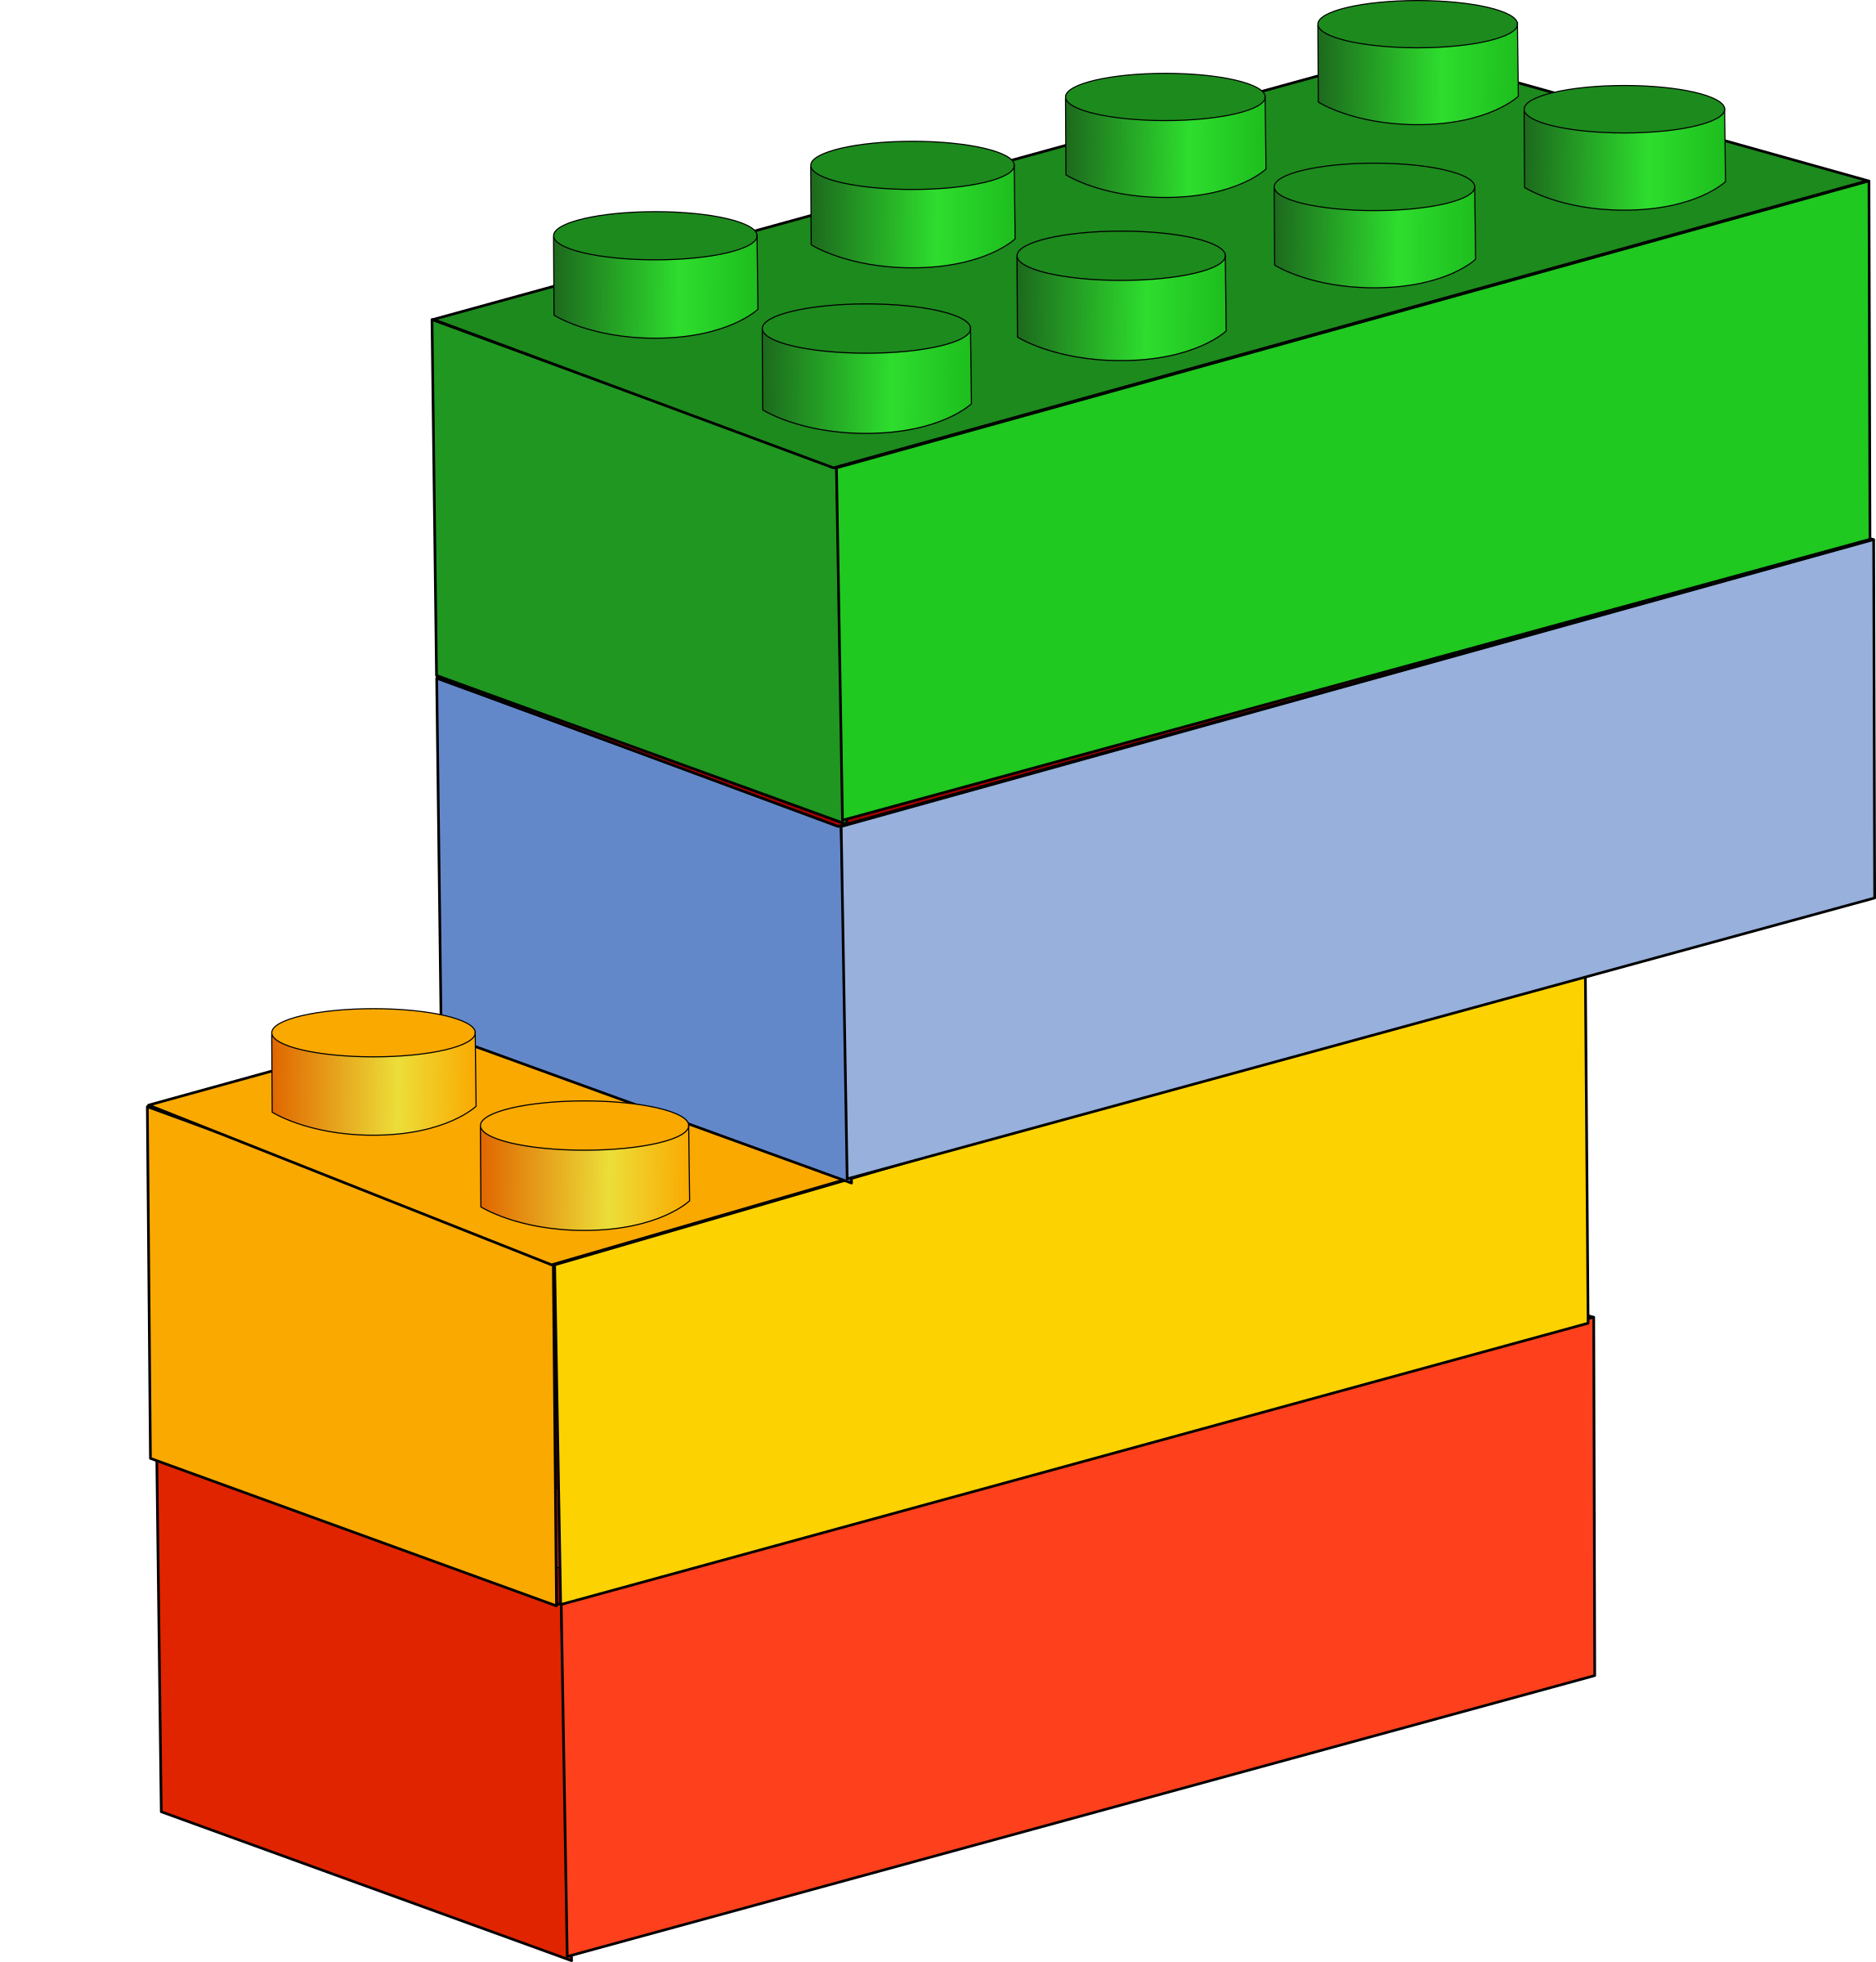 Legos clipart frame. Lego person at getdrawings